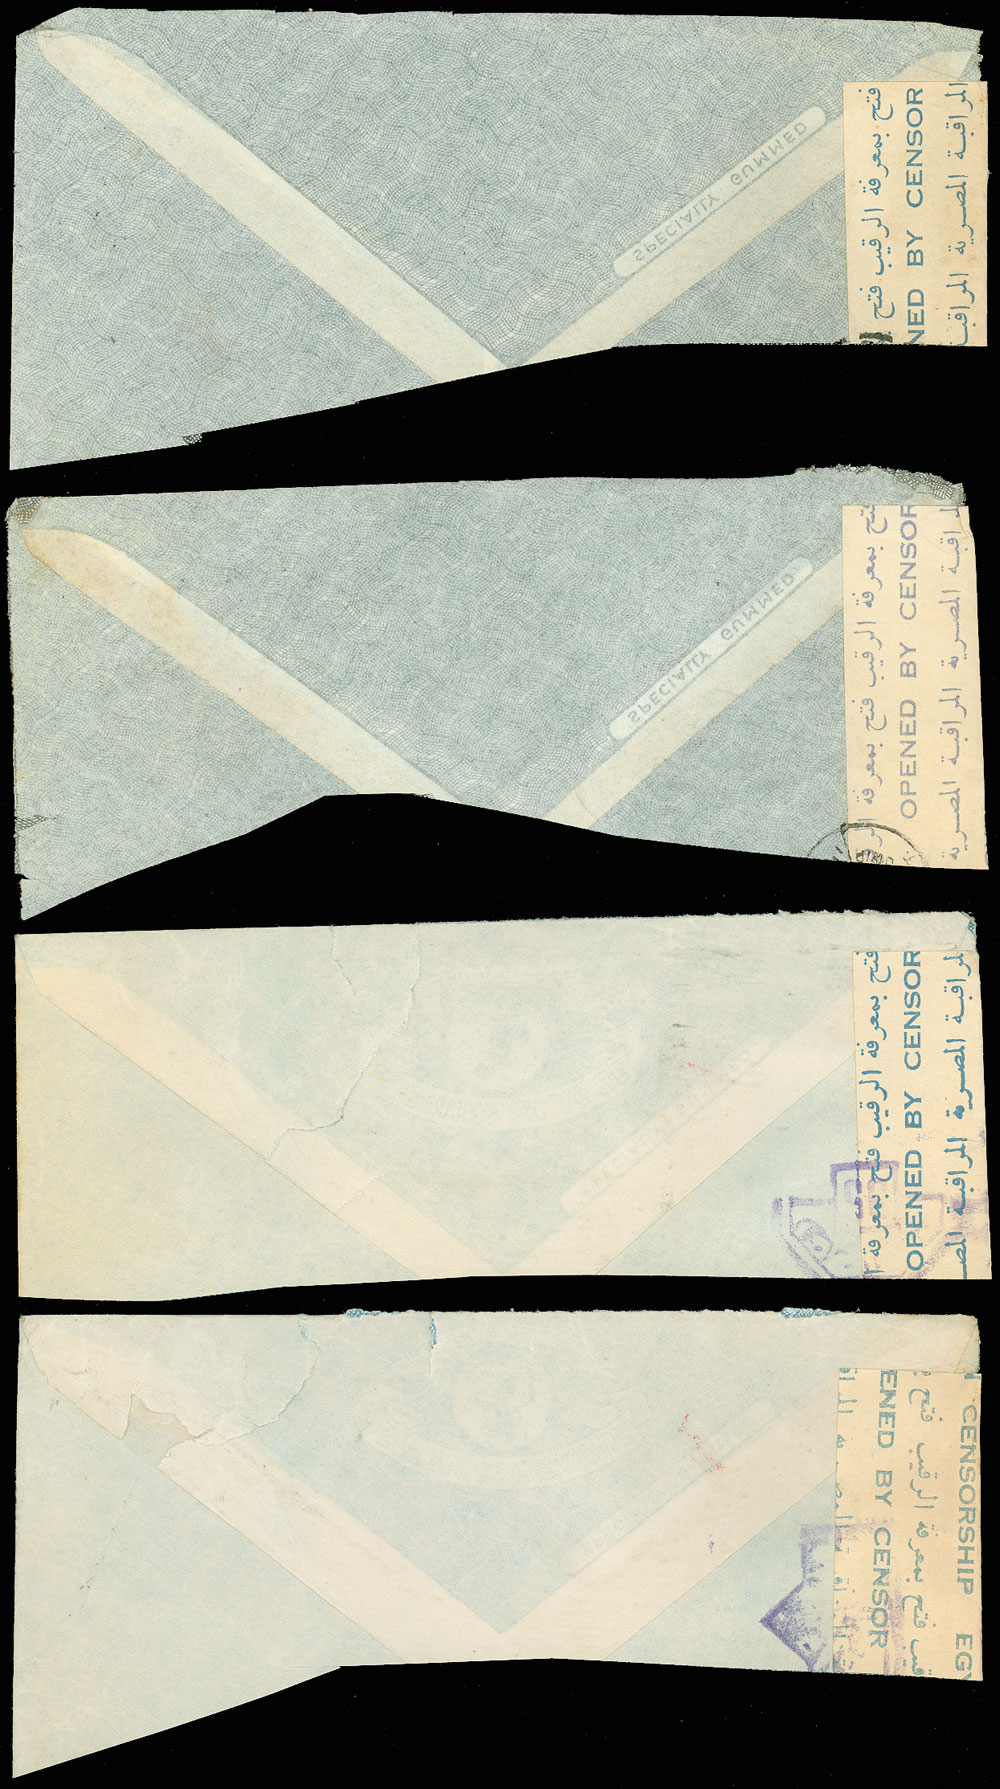 1942-WWII-EGYPT-4-Partial-Covers-CENSOR-TAPE-amp-HANDSTAMPS-Hospital-Supply-Co thumbnail 2